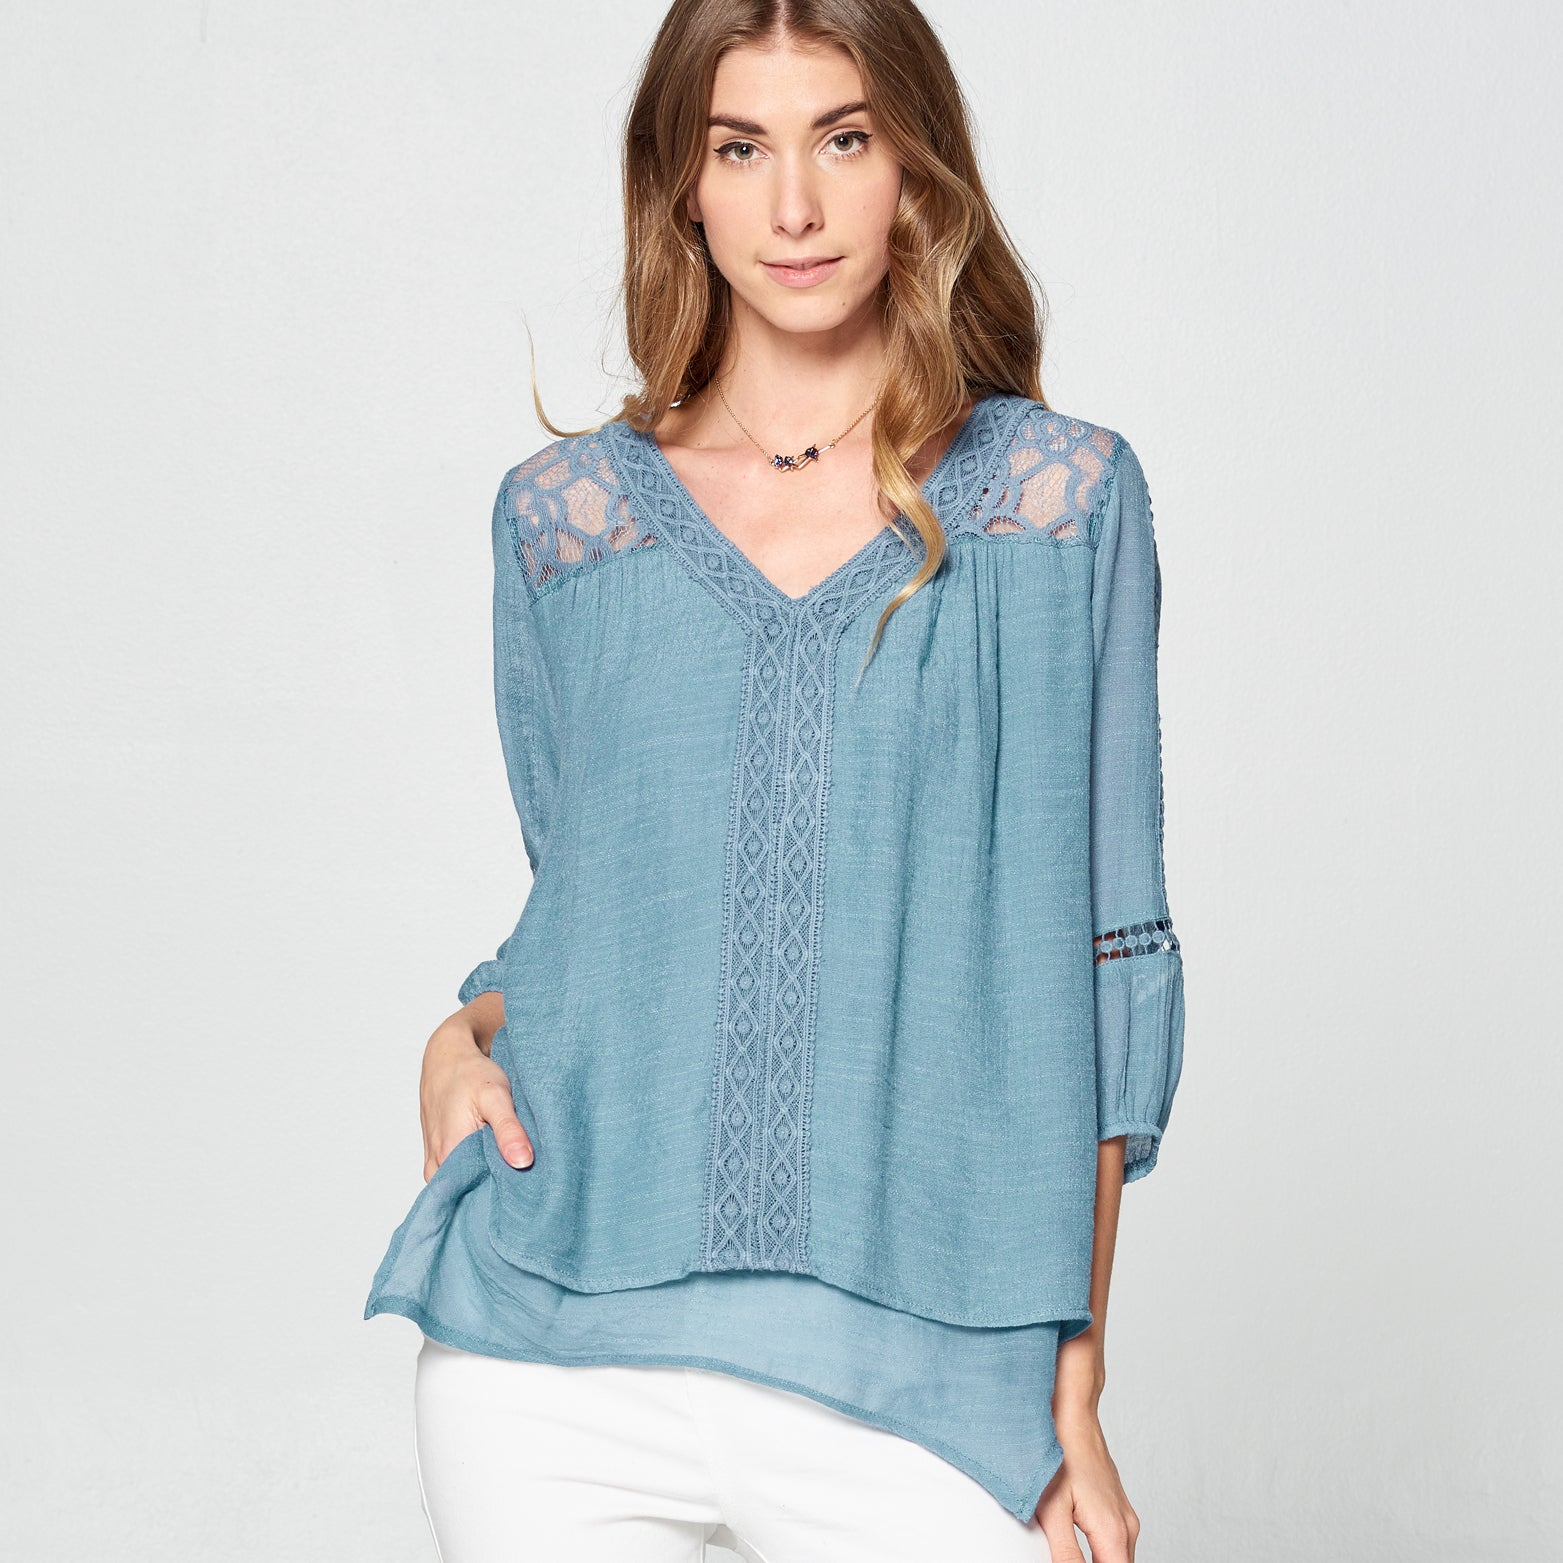 Contrast Lace Layered Top